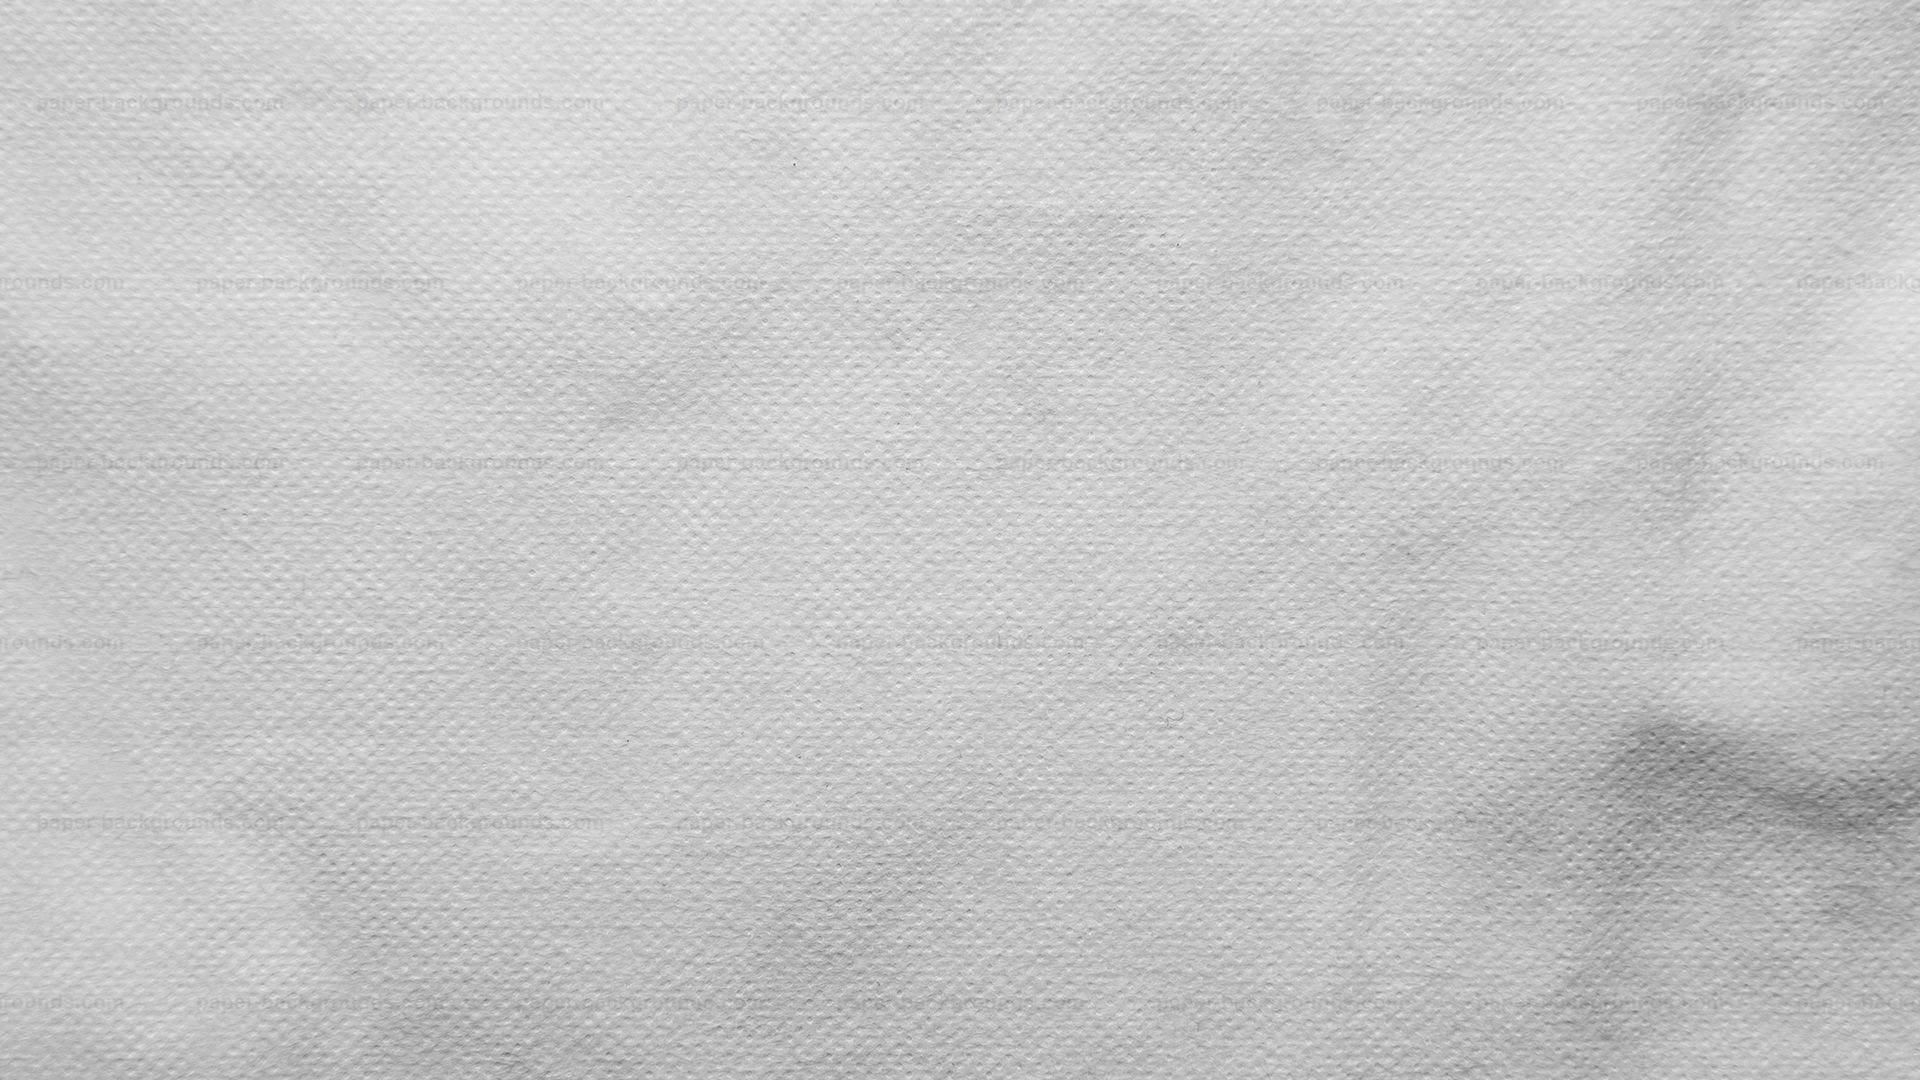 White Fabric Material Texture HD